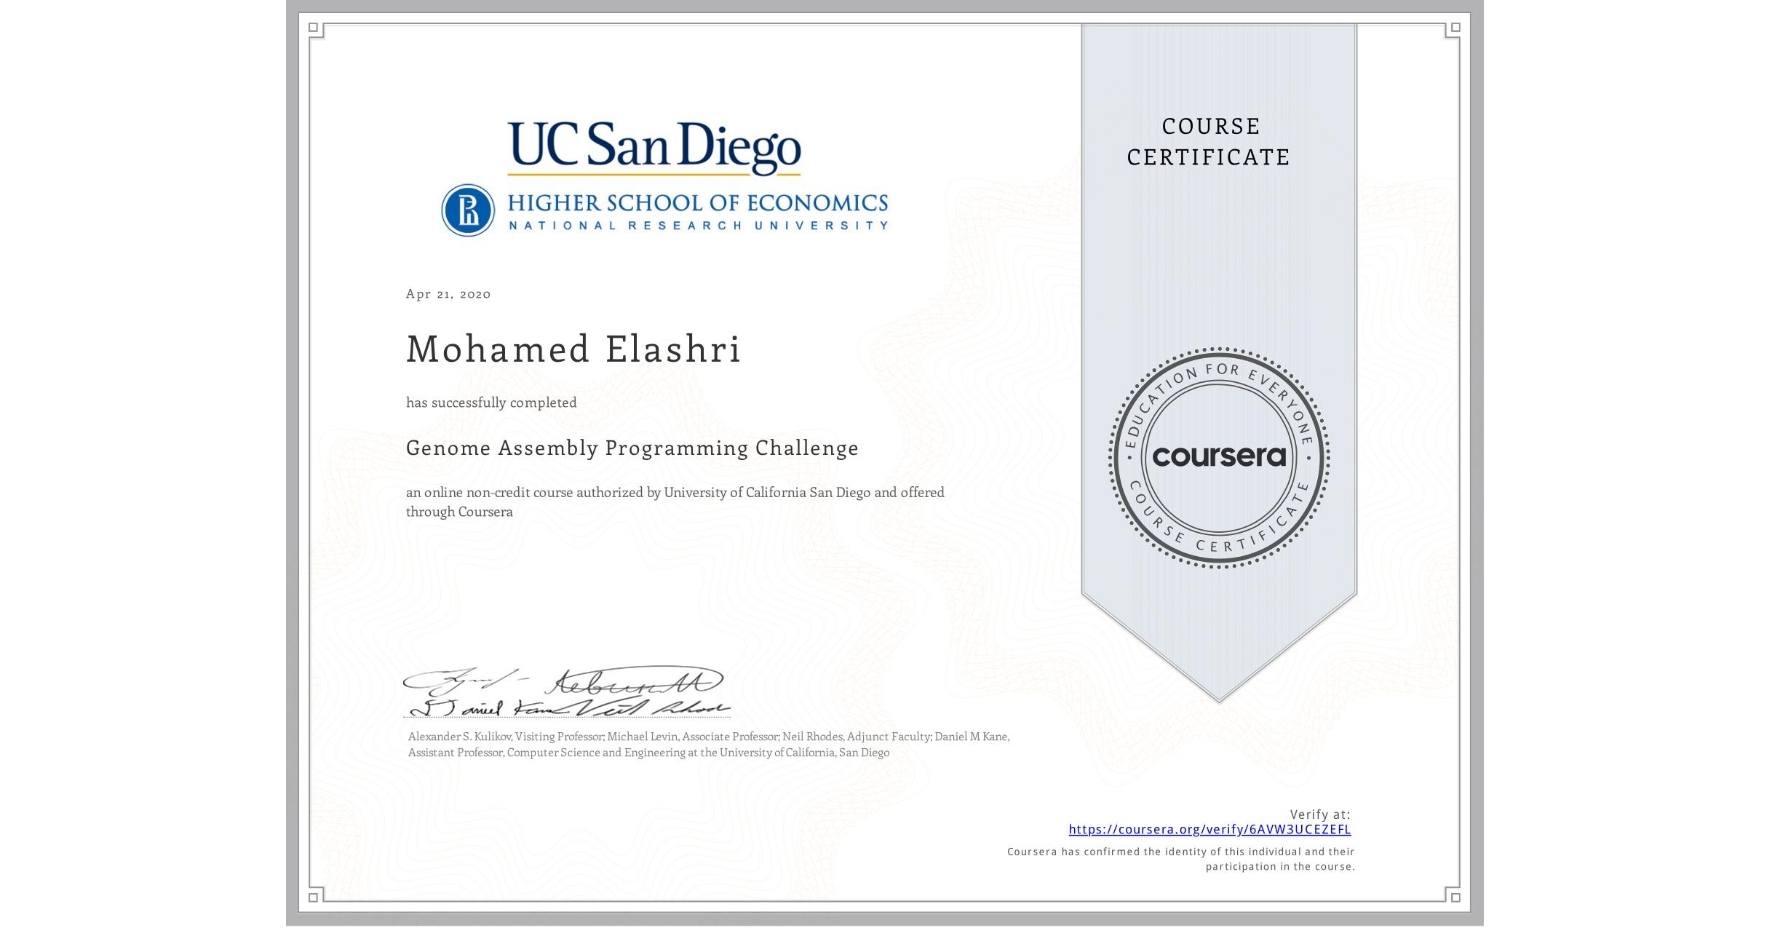 View certificate for Mohamed Elashri, Genome Assembly Programming Challenge, an online non-credit course authorized by University of California San Diego & HSE University and offered through Coursera